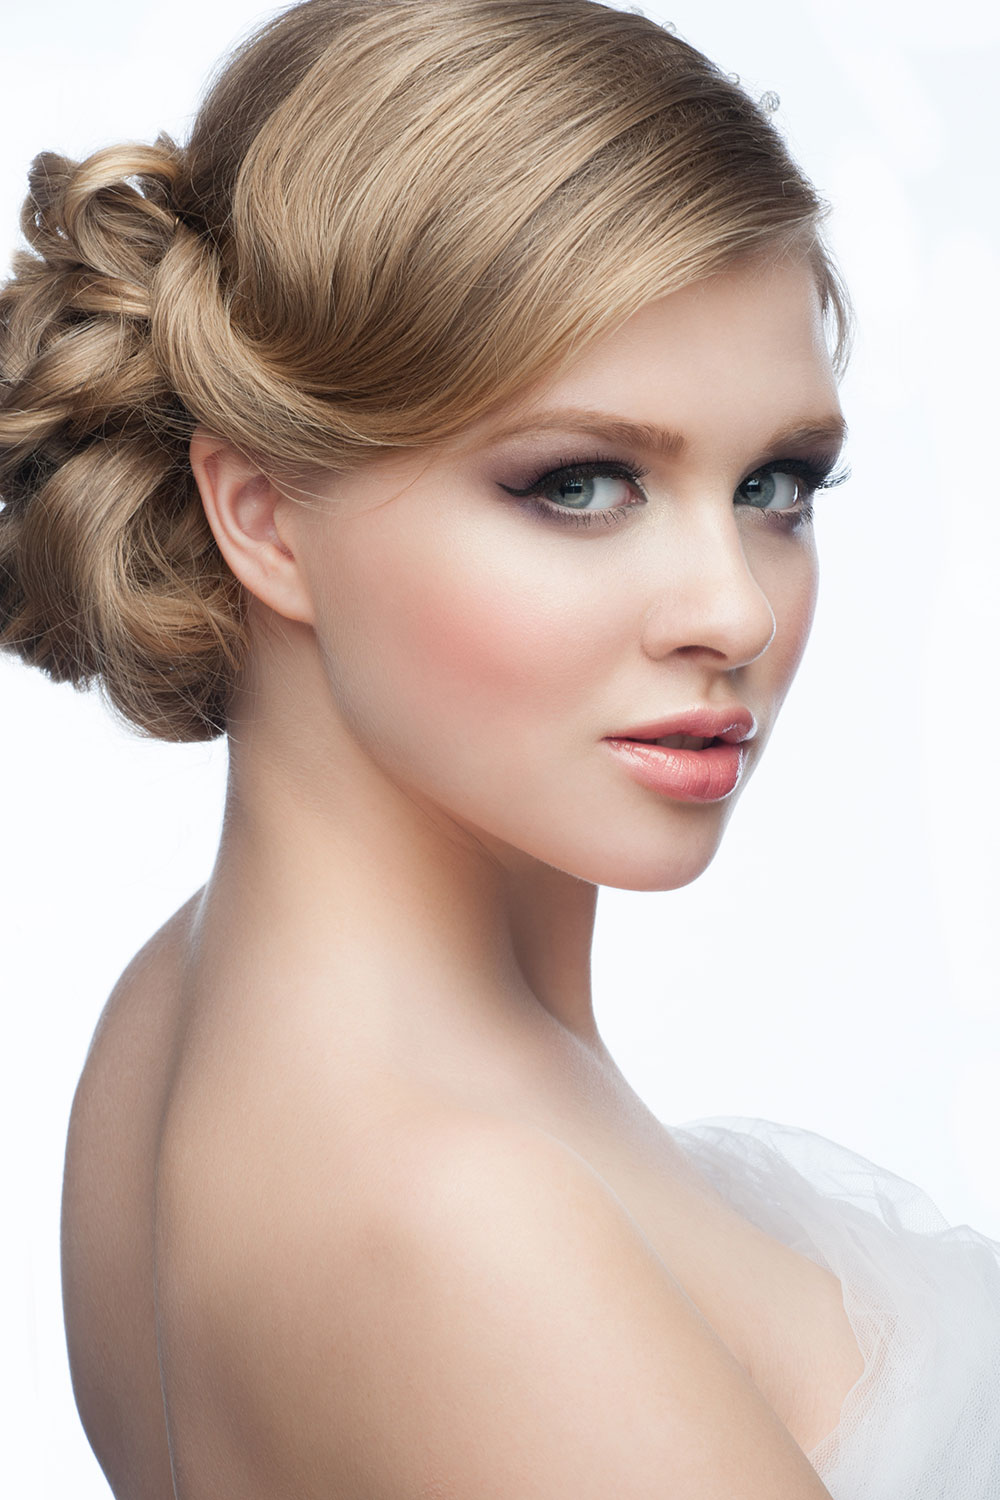 Neat side parted plaited bun Bridal hairstyle